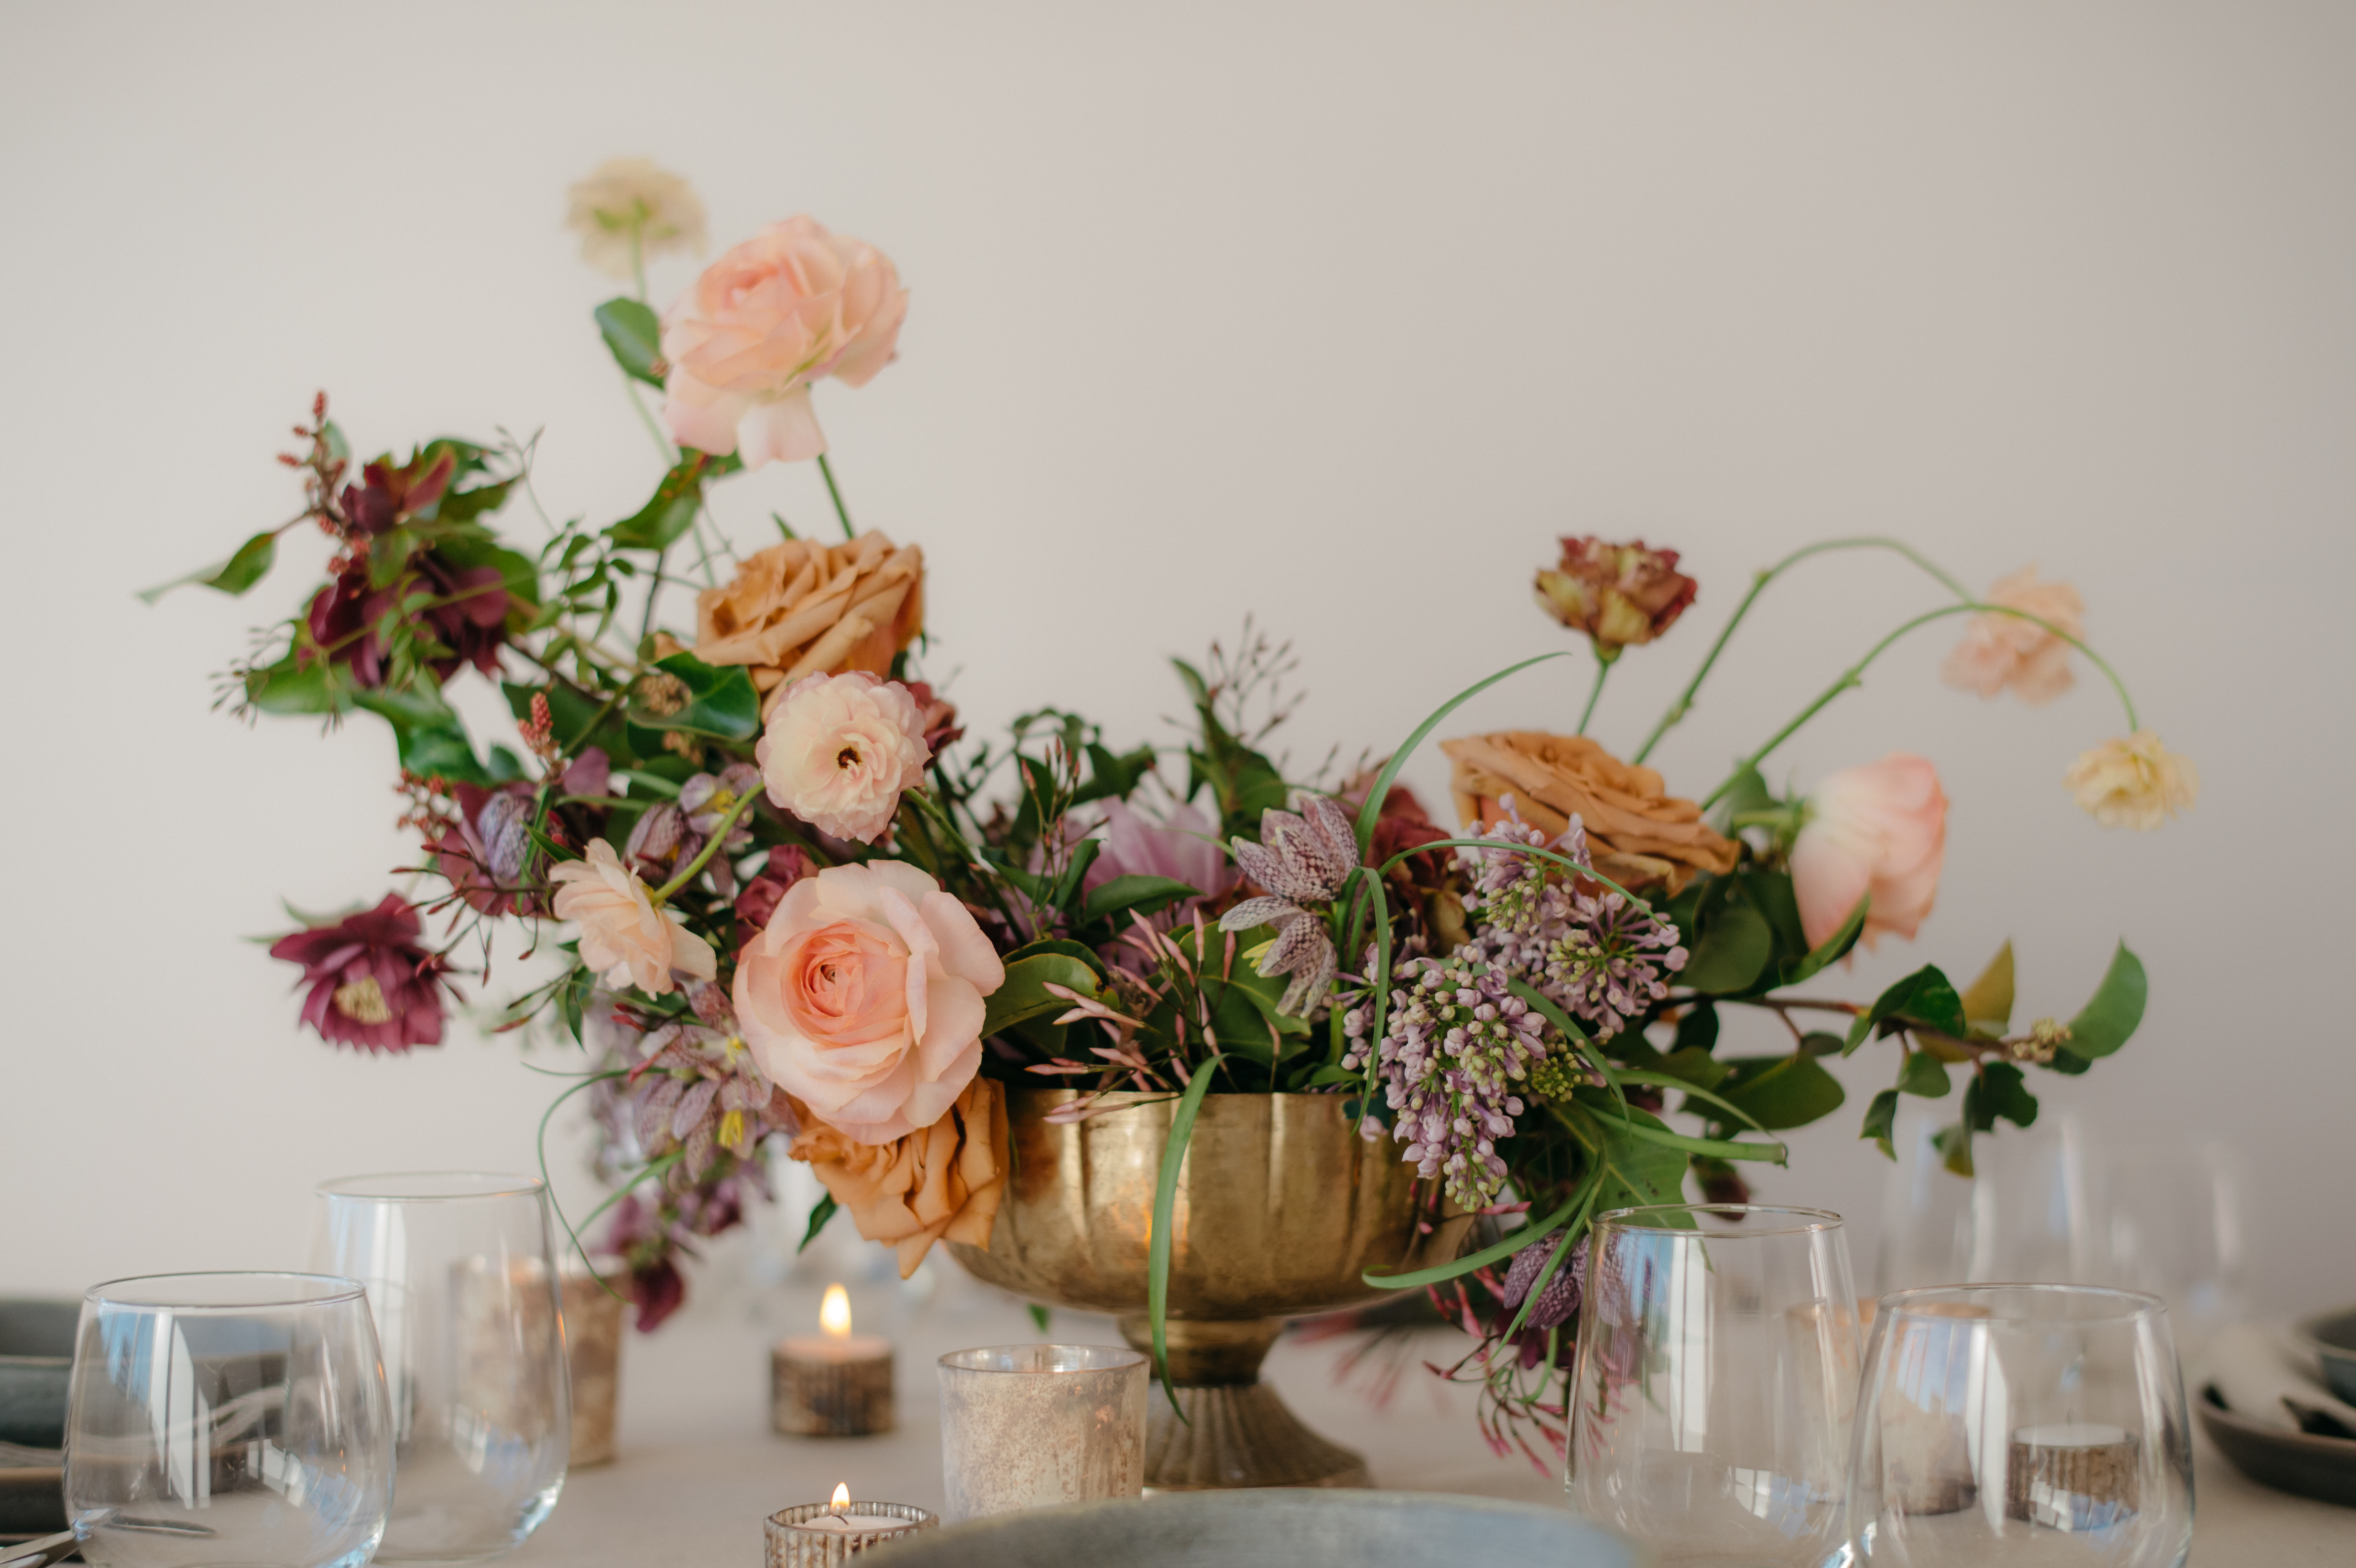 Neutral Toned Florals in Compote